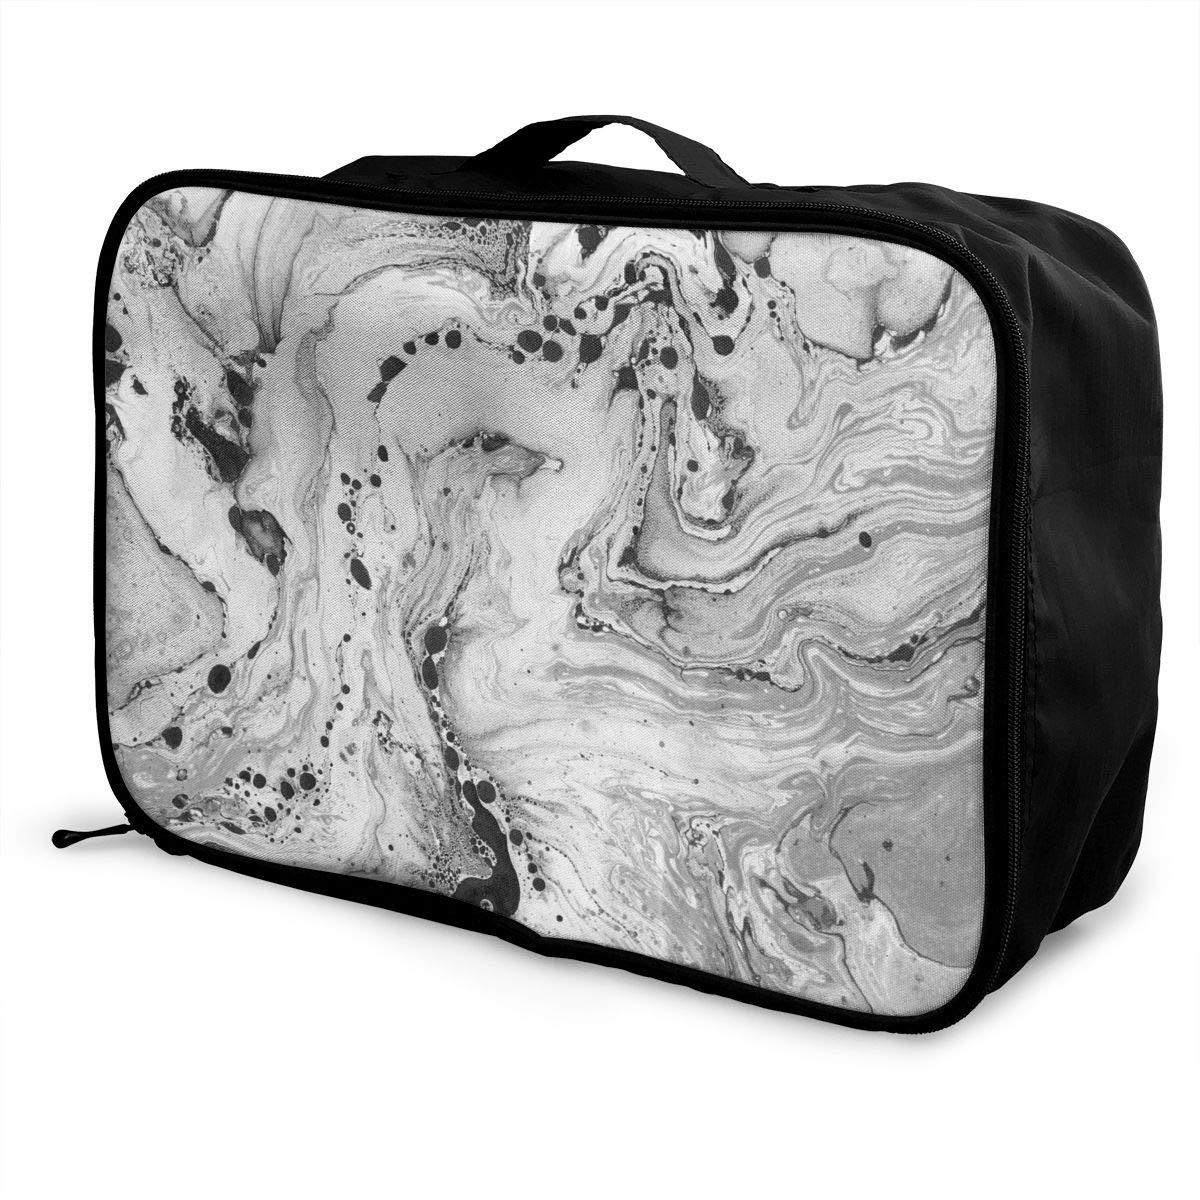 Grey And White Marble Travel Duffel Bag Waterproof Fashion Lightweight Large Capacity Portable Luggage Bag